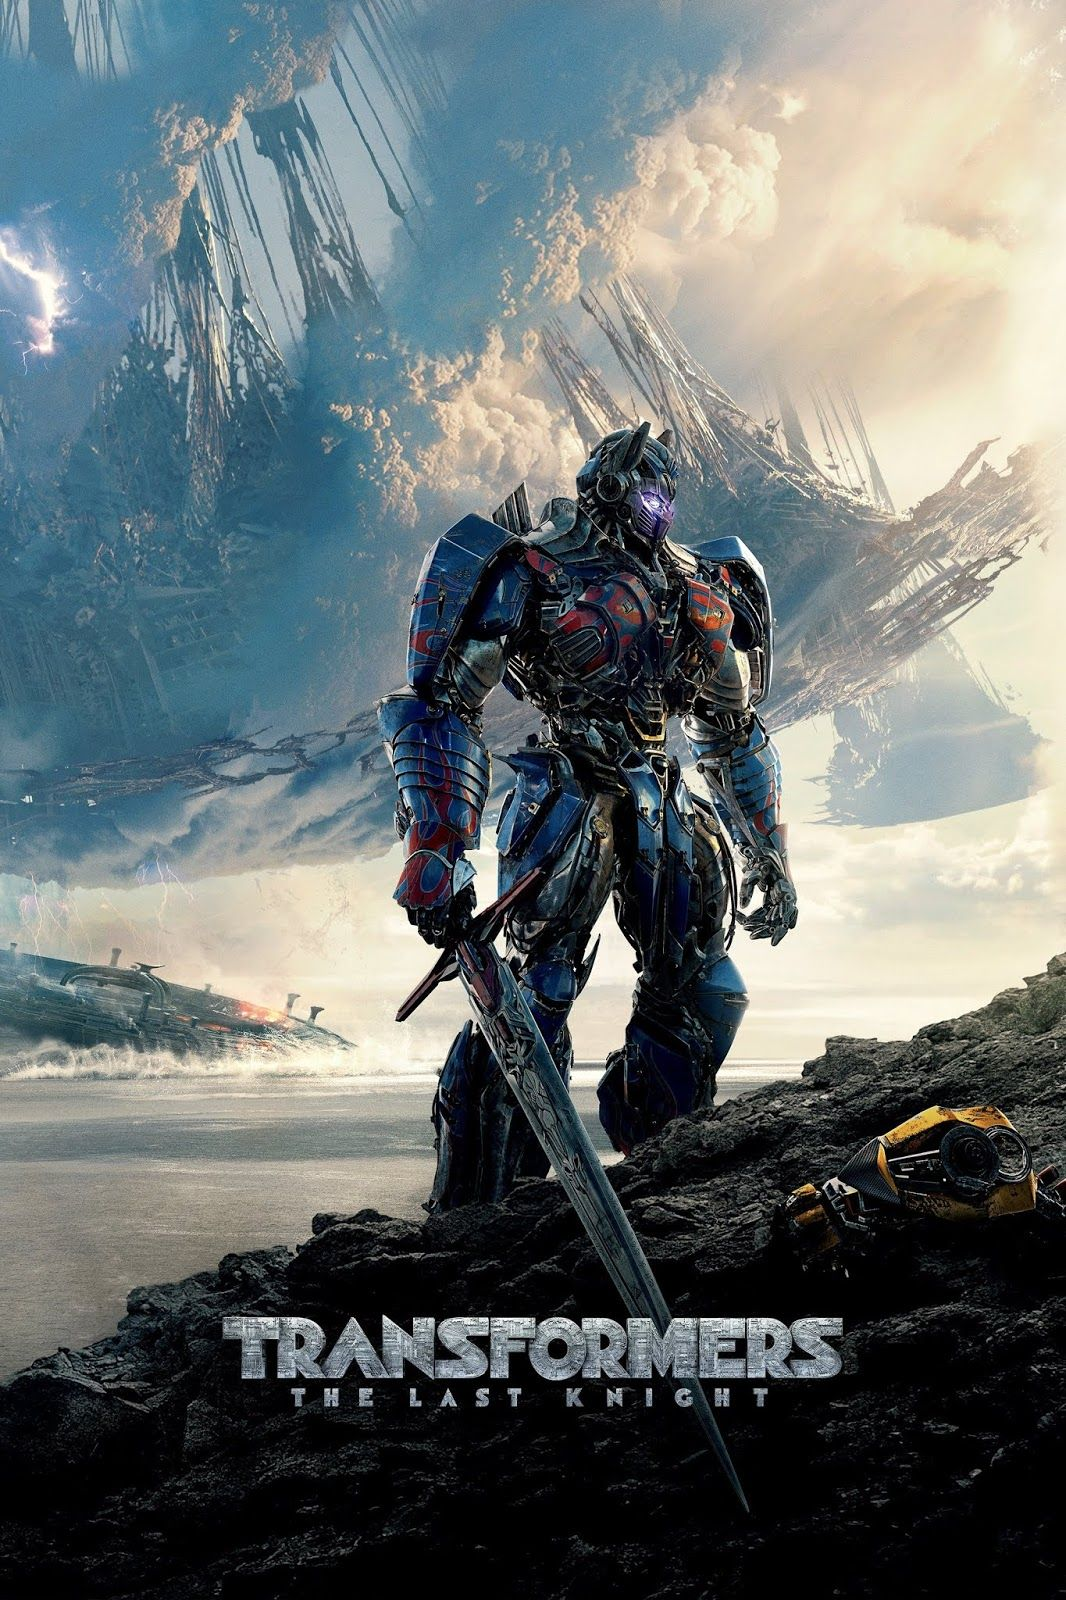 transformers 3 full movie in tamil dubbed free download